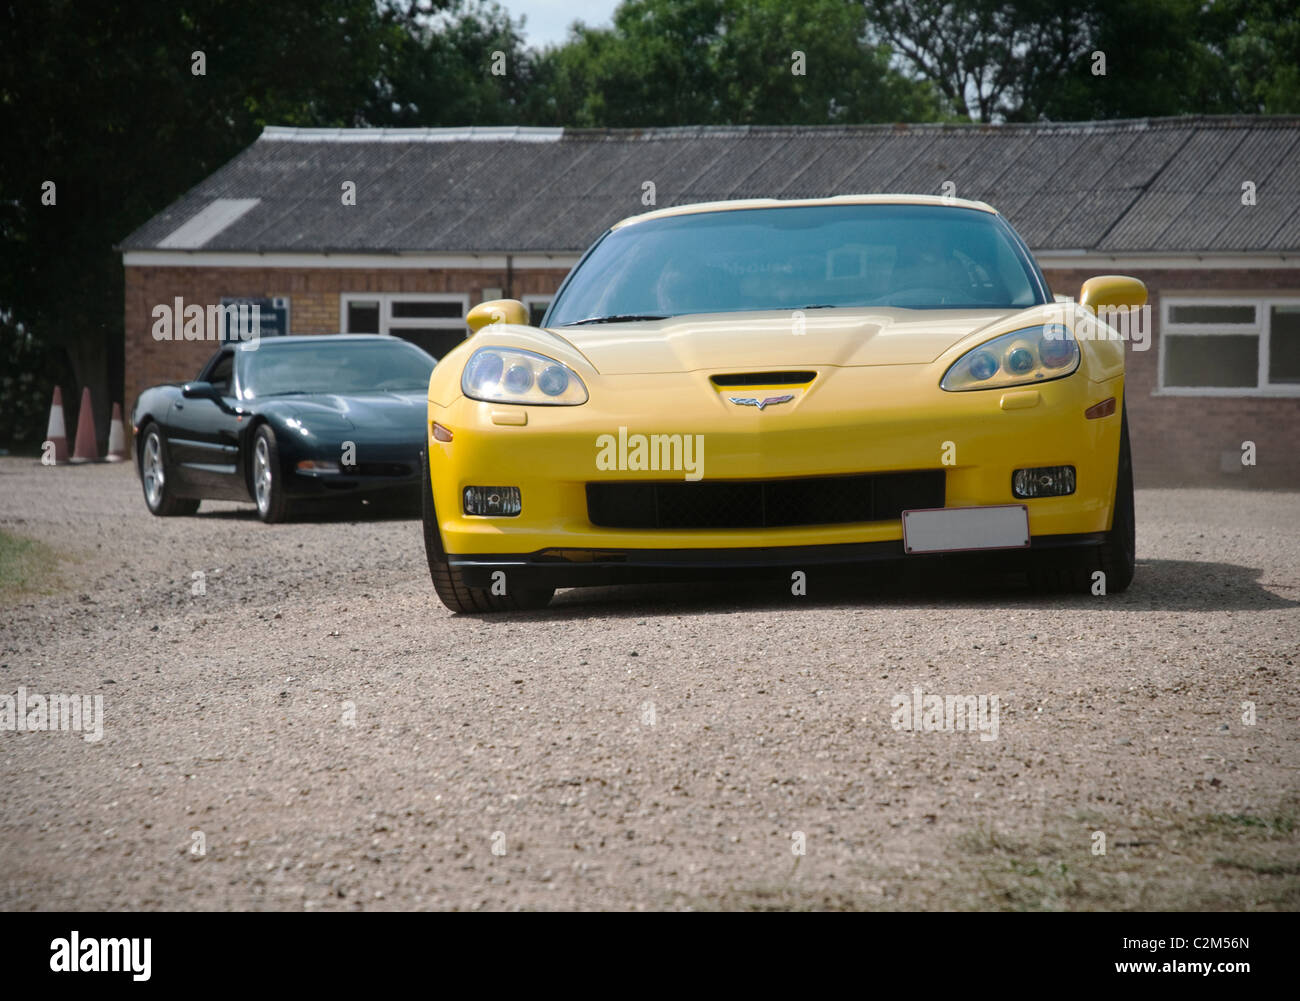 Two modern American Corvette sports cars Stock Photo: 36093197 - Alamy